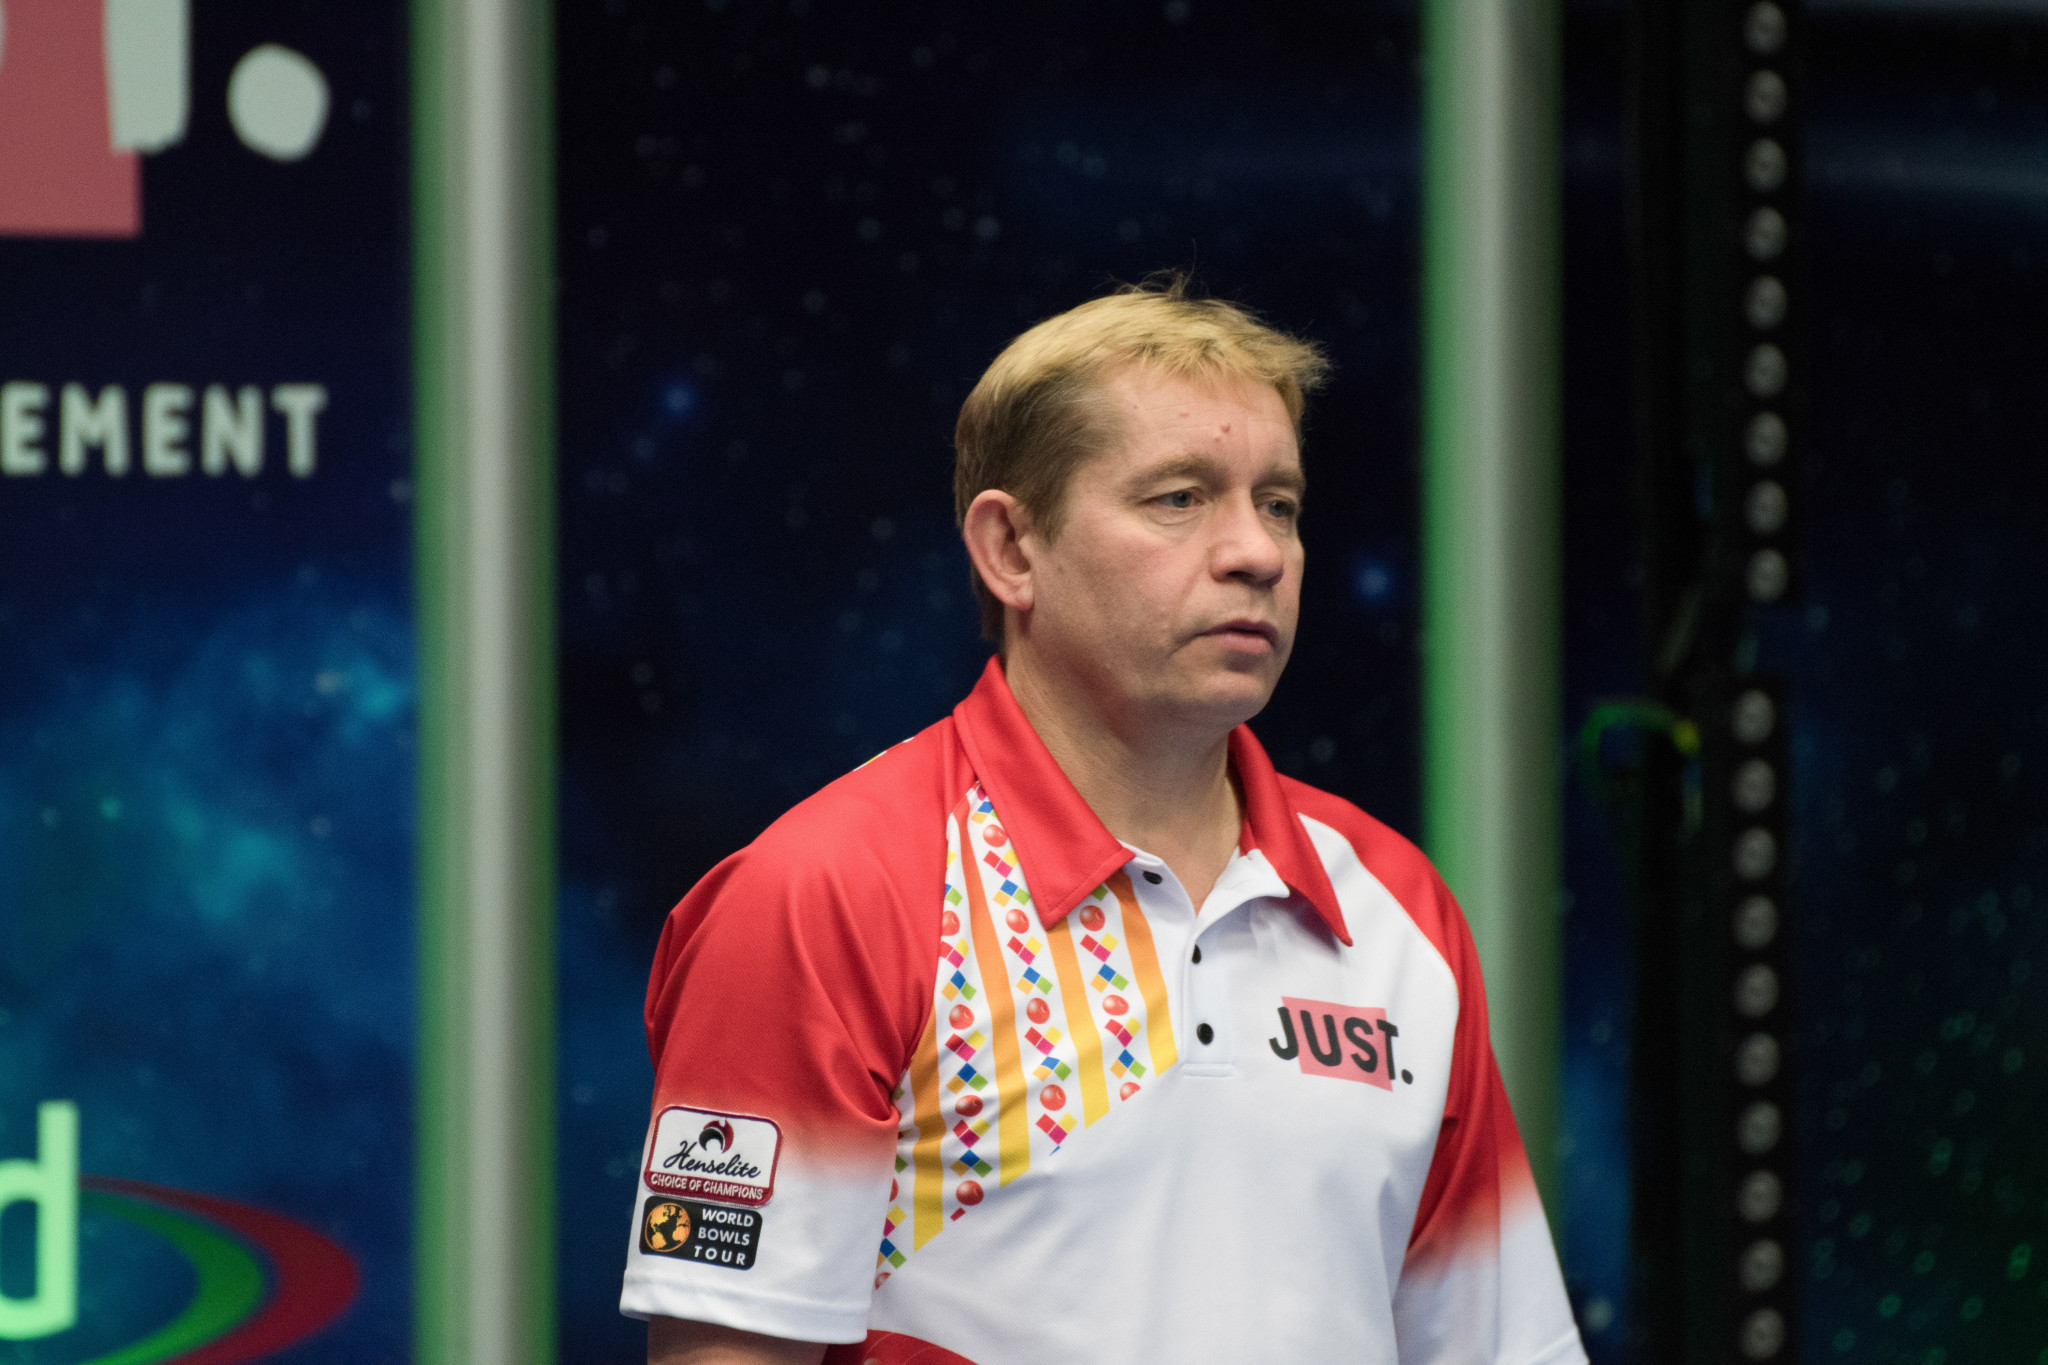 Greg Harlow will be hoping to go one step further at this tournament after finishing second last year ©World Bowls Tour